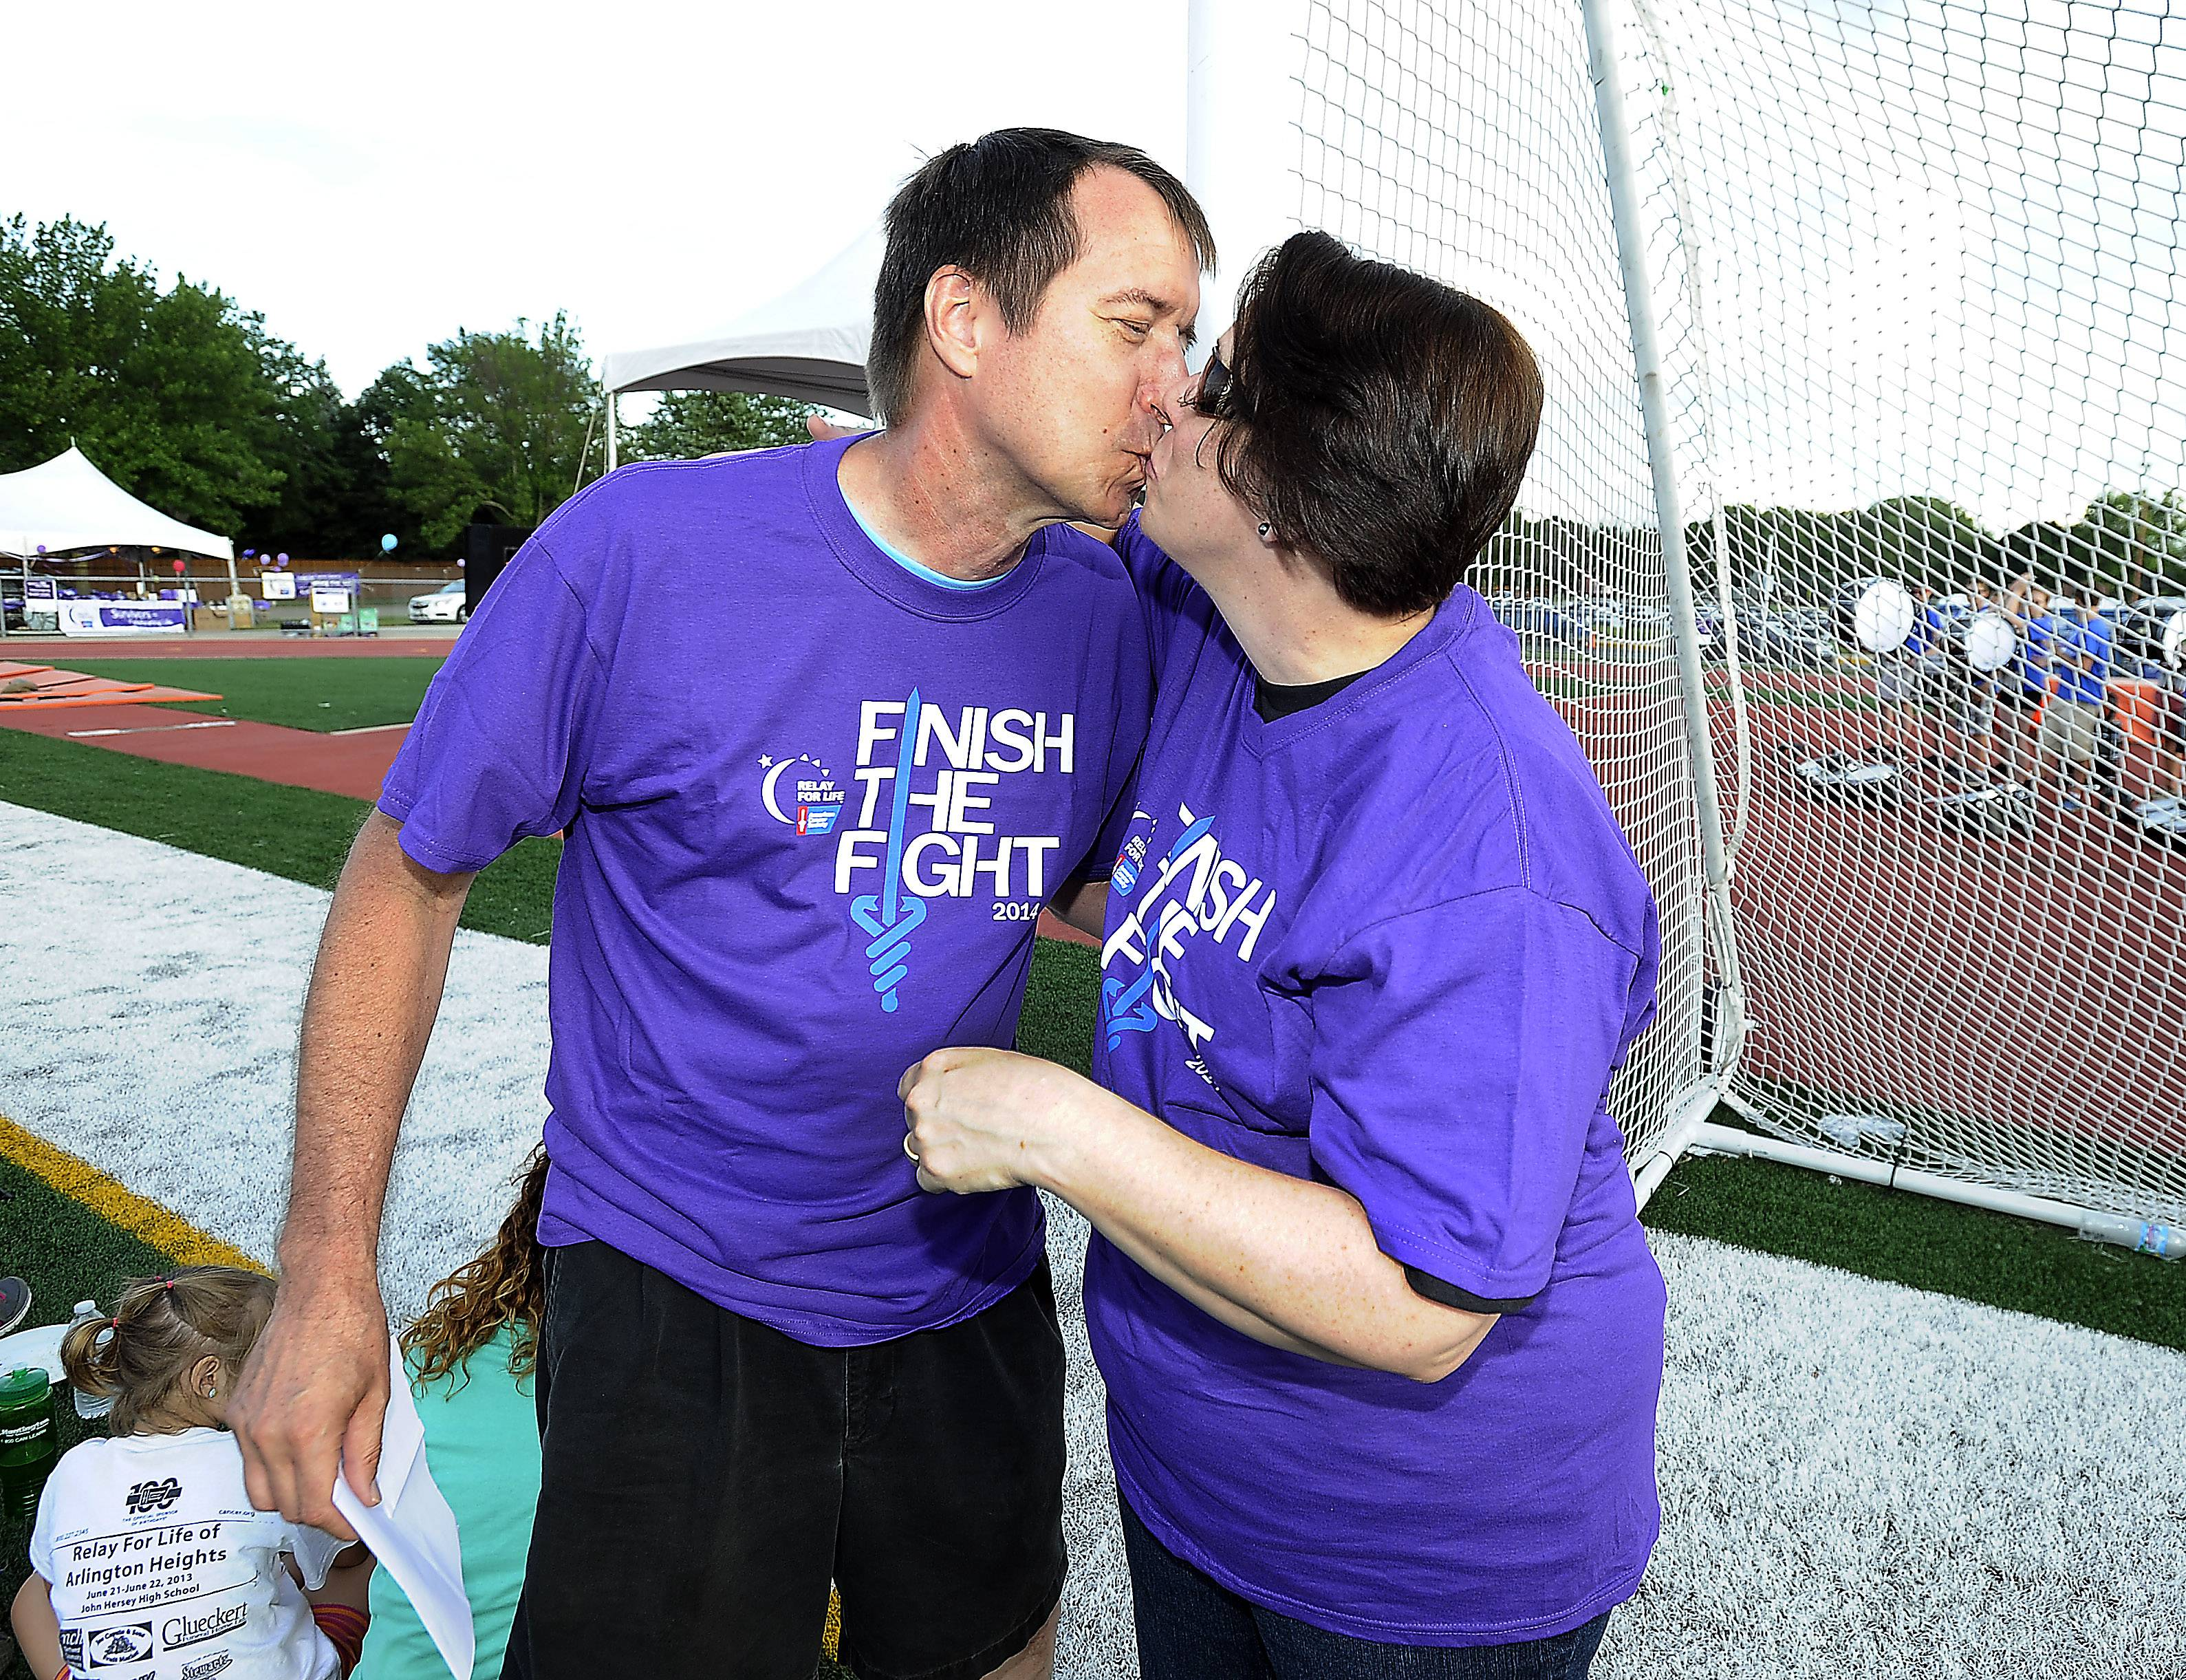 Breast cancer survivor Cheryl Tyrcha of Mount Prospect kisses her husband, Ed, in thanks for his support Friday at the American Cancer Society Relay For Life at John Hersey High School in Arlington Heights. Ed is also a cancer survivor, as his  kidney cancer has been in remission for over a year. Cheryl has been in remission  for more than seven years.